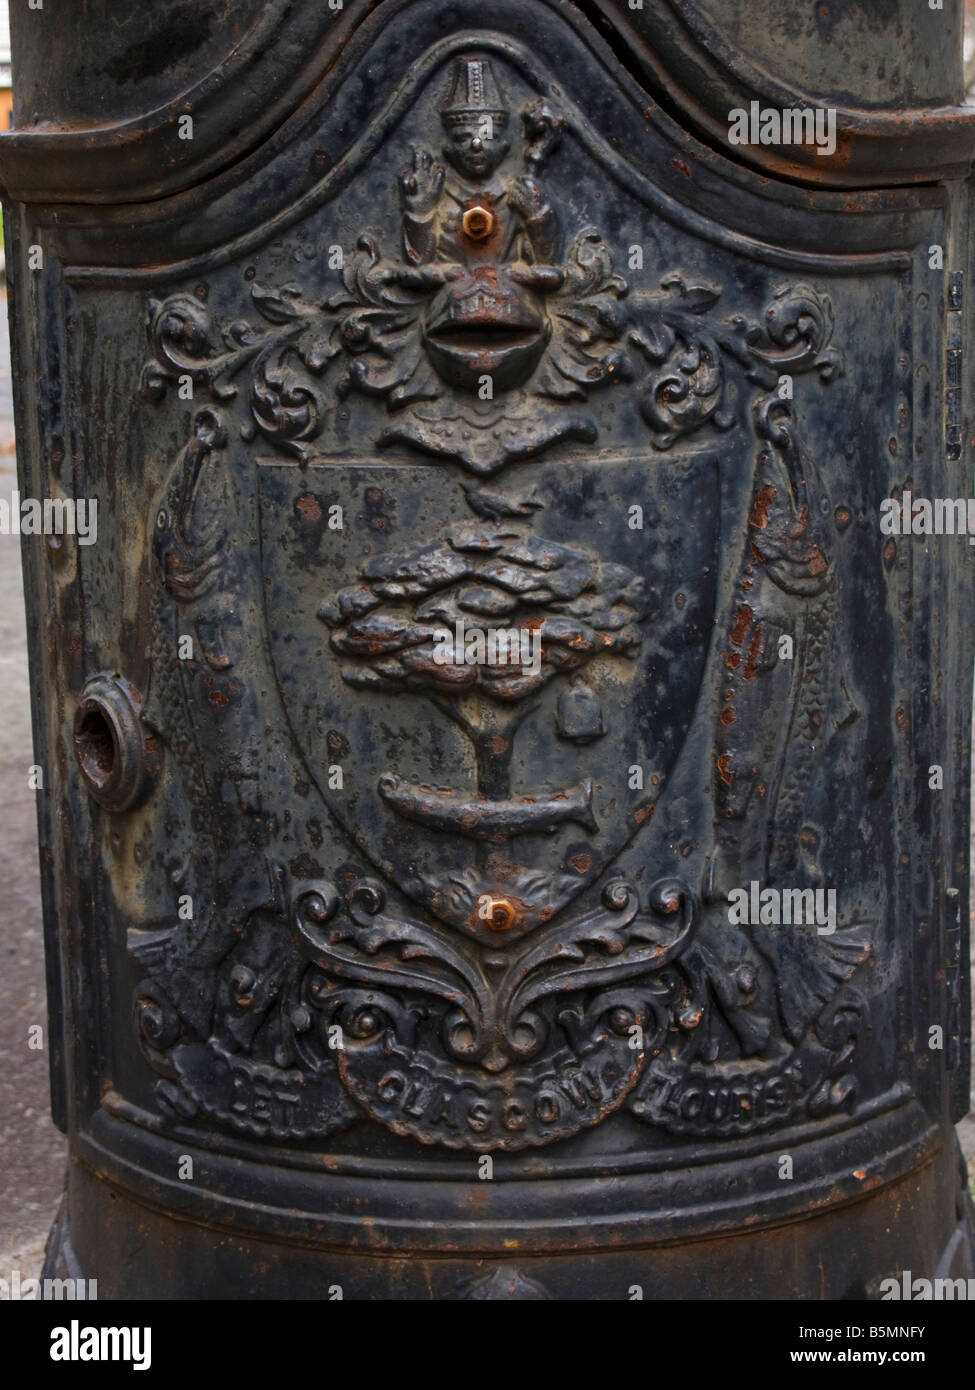 Cast Iron Works High Resolution Stock Photography And Images Alamy